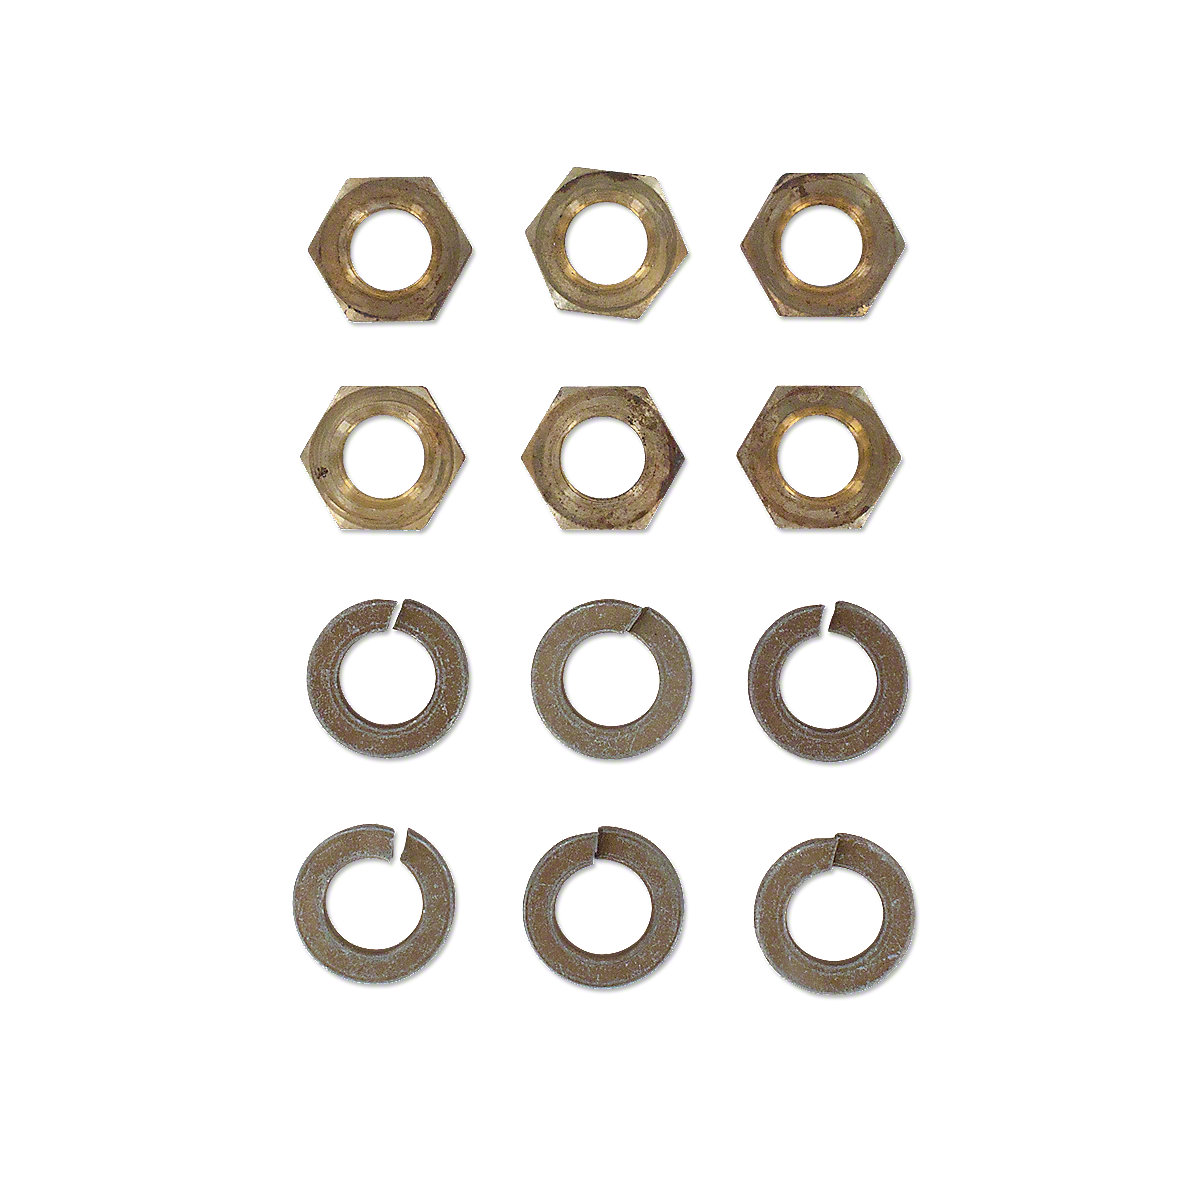 Intake and Exhaust Manifold Nut and Washer Kit For Allis Chalmers D17 Gas & LP, 170, 175 Gas